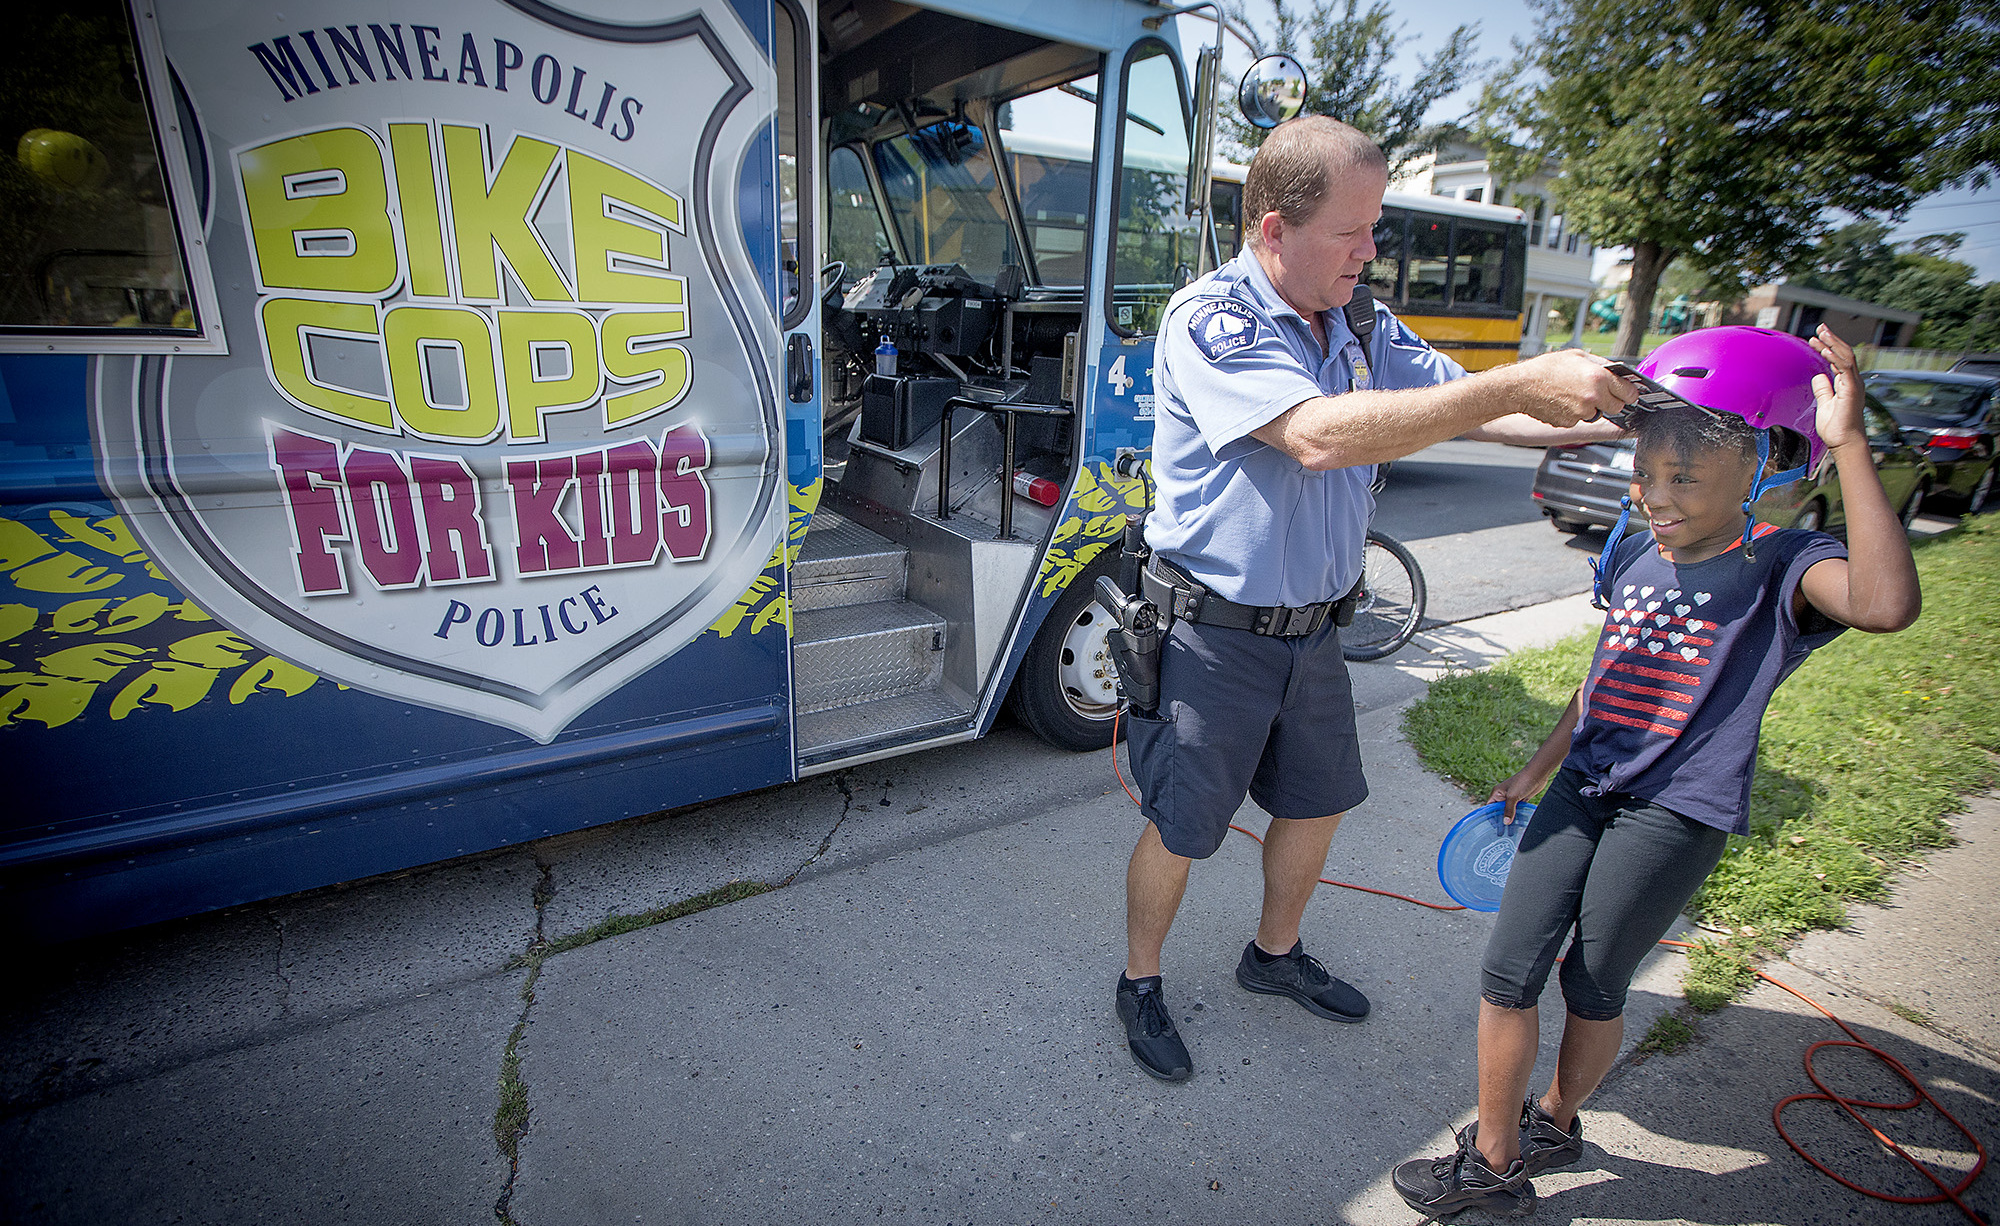 Eight years in, Bike Cops for Kids rolling strong in Minneapolis